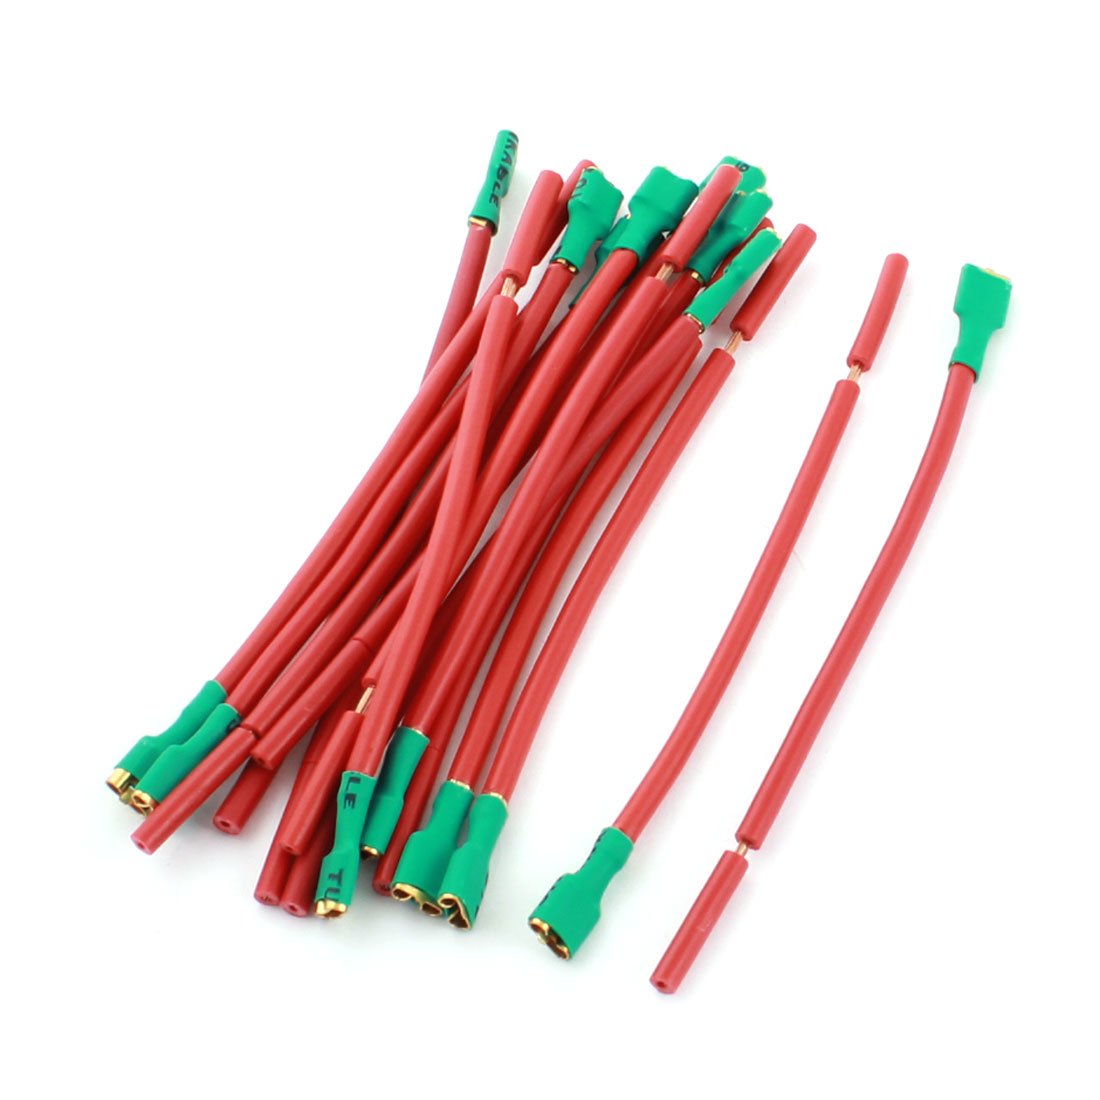 15Pcs Red Green Female Terminal Cable Wire Connector for Car Audio Speaker